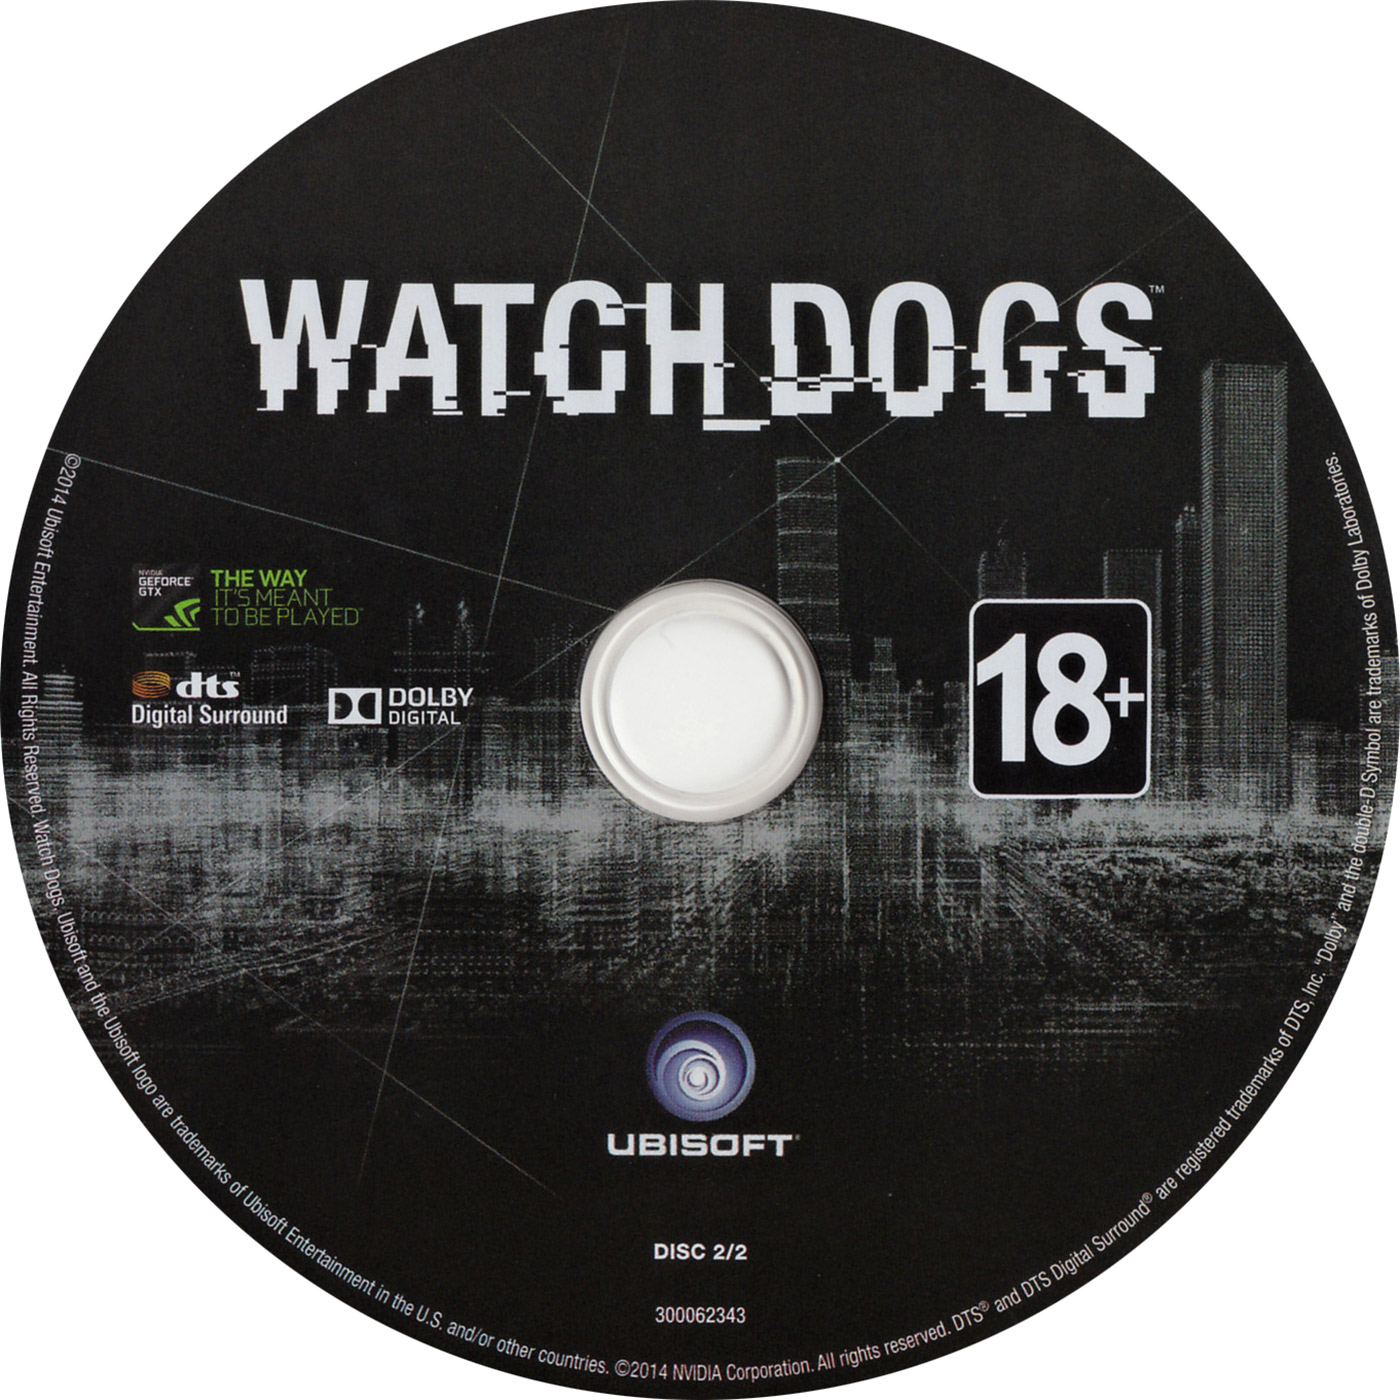 Watch Dogs - CD obal 2